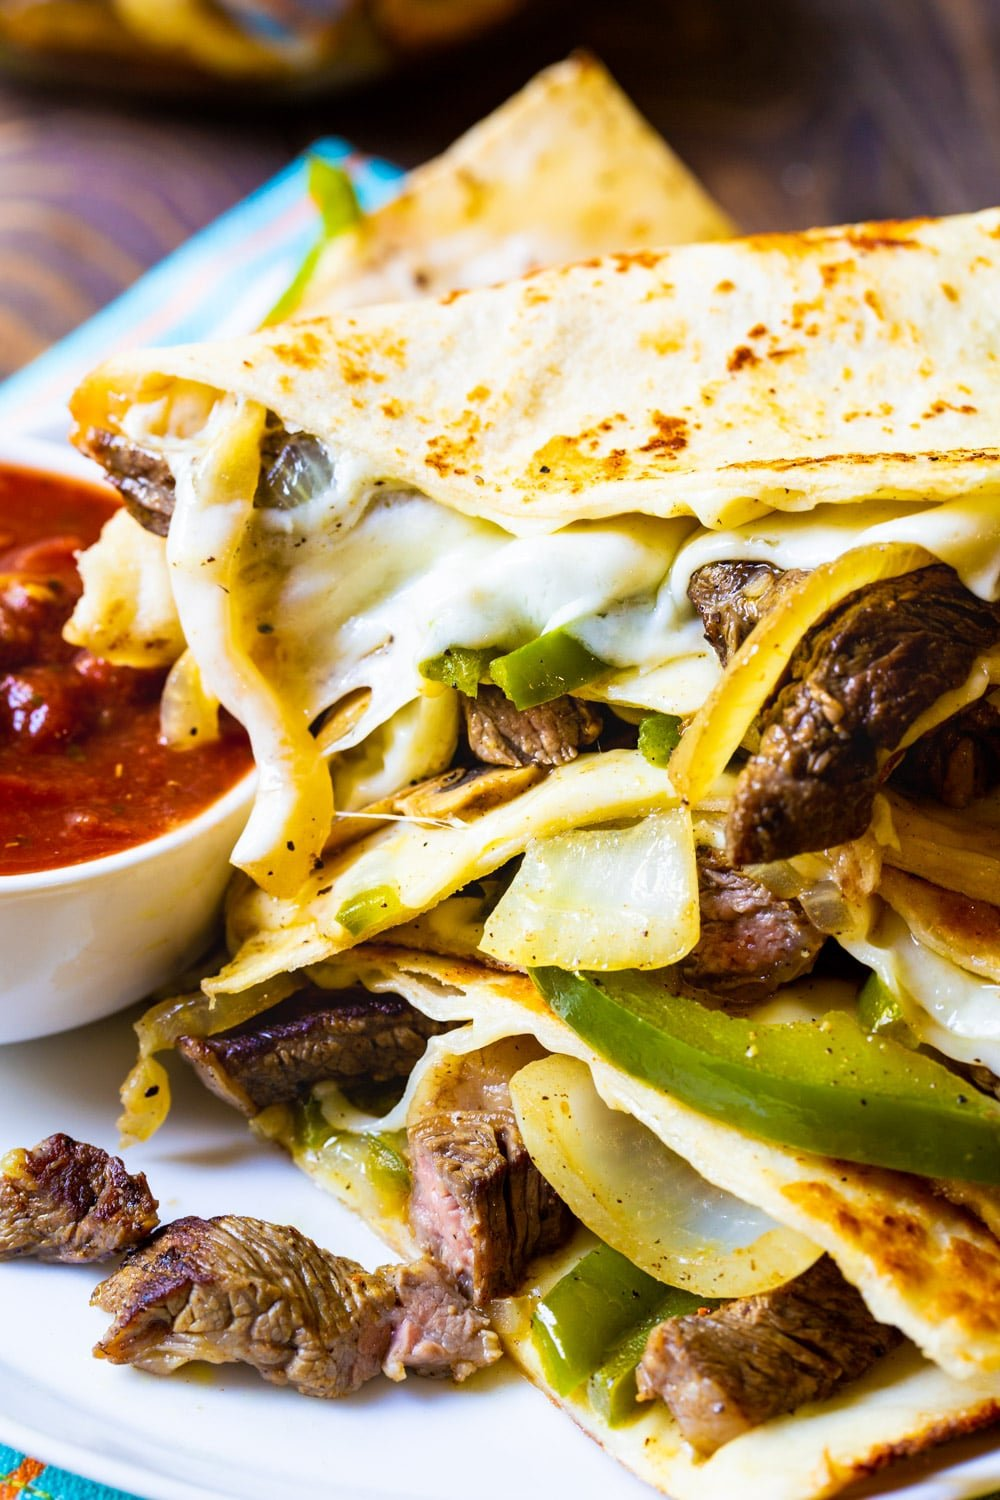 Philly Cheese Steak Quesadillas on a plate with salsa.